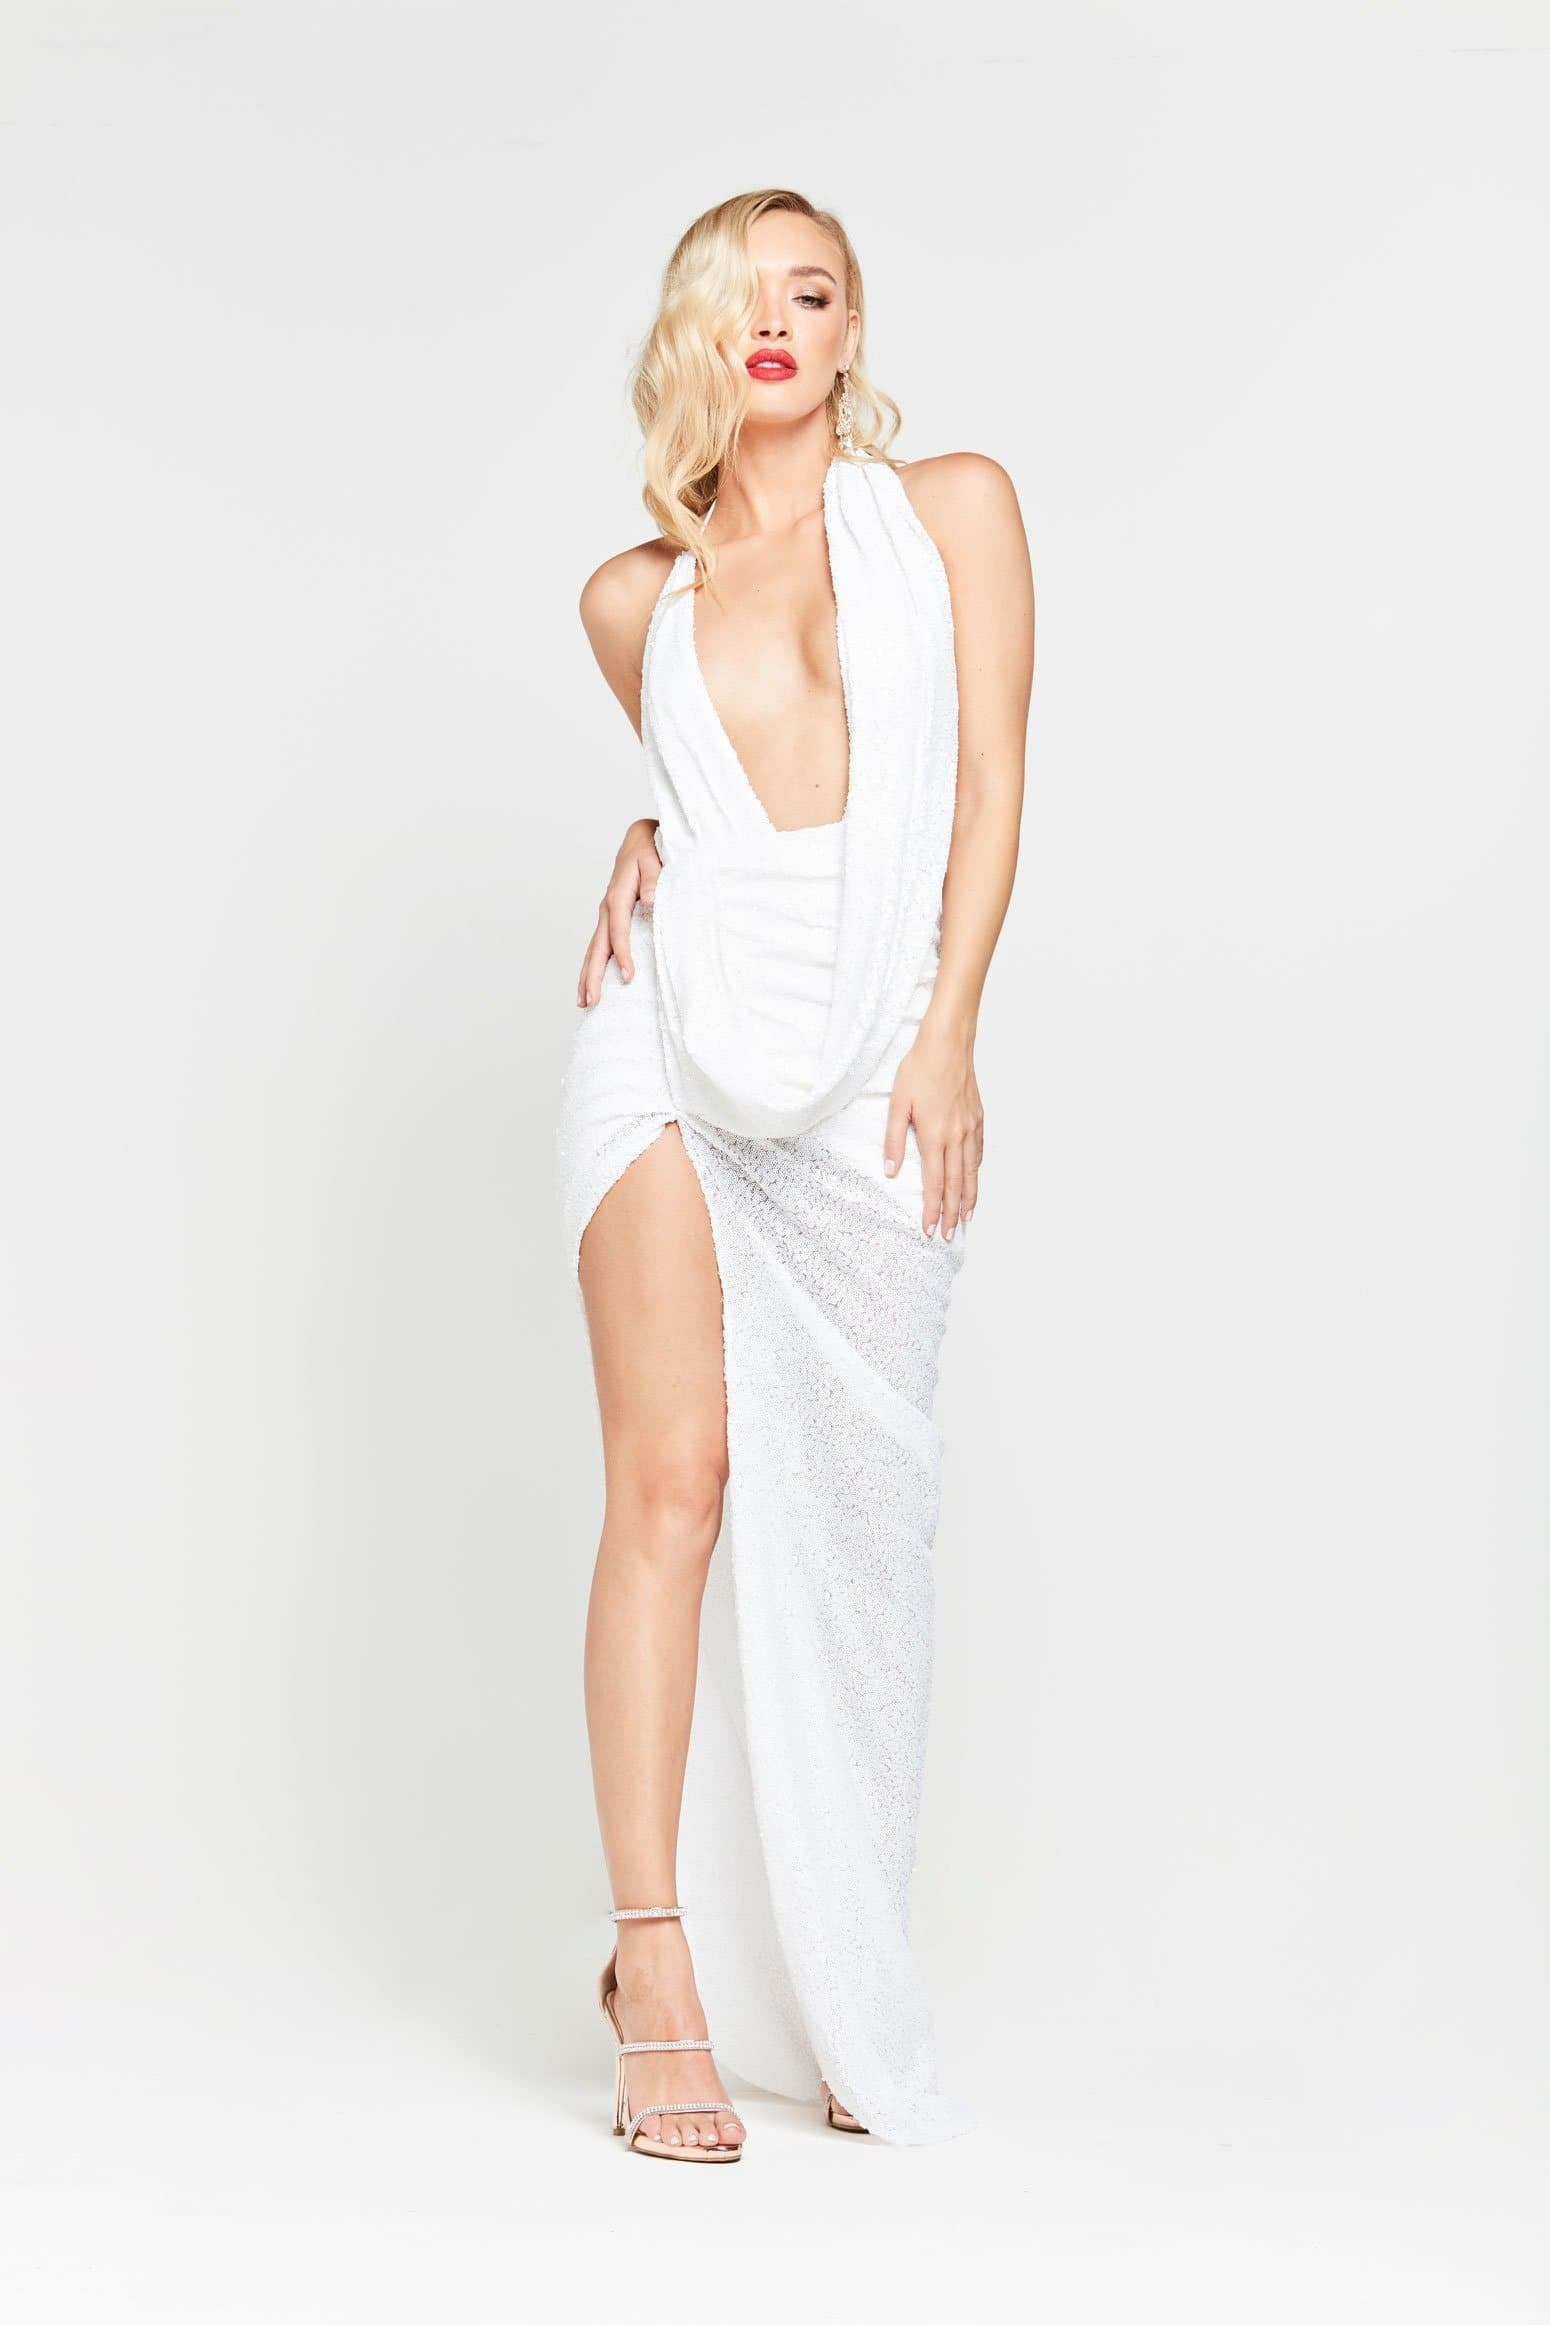 A&N Lala - White Sequin Gown with Ruched Cowl Neck and Side Slit